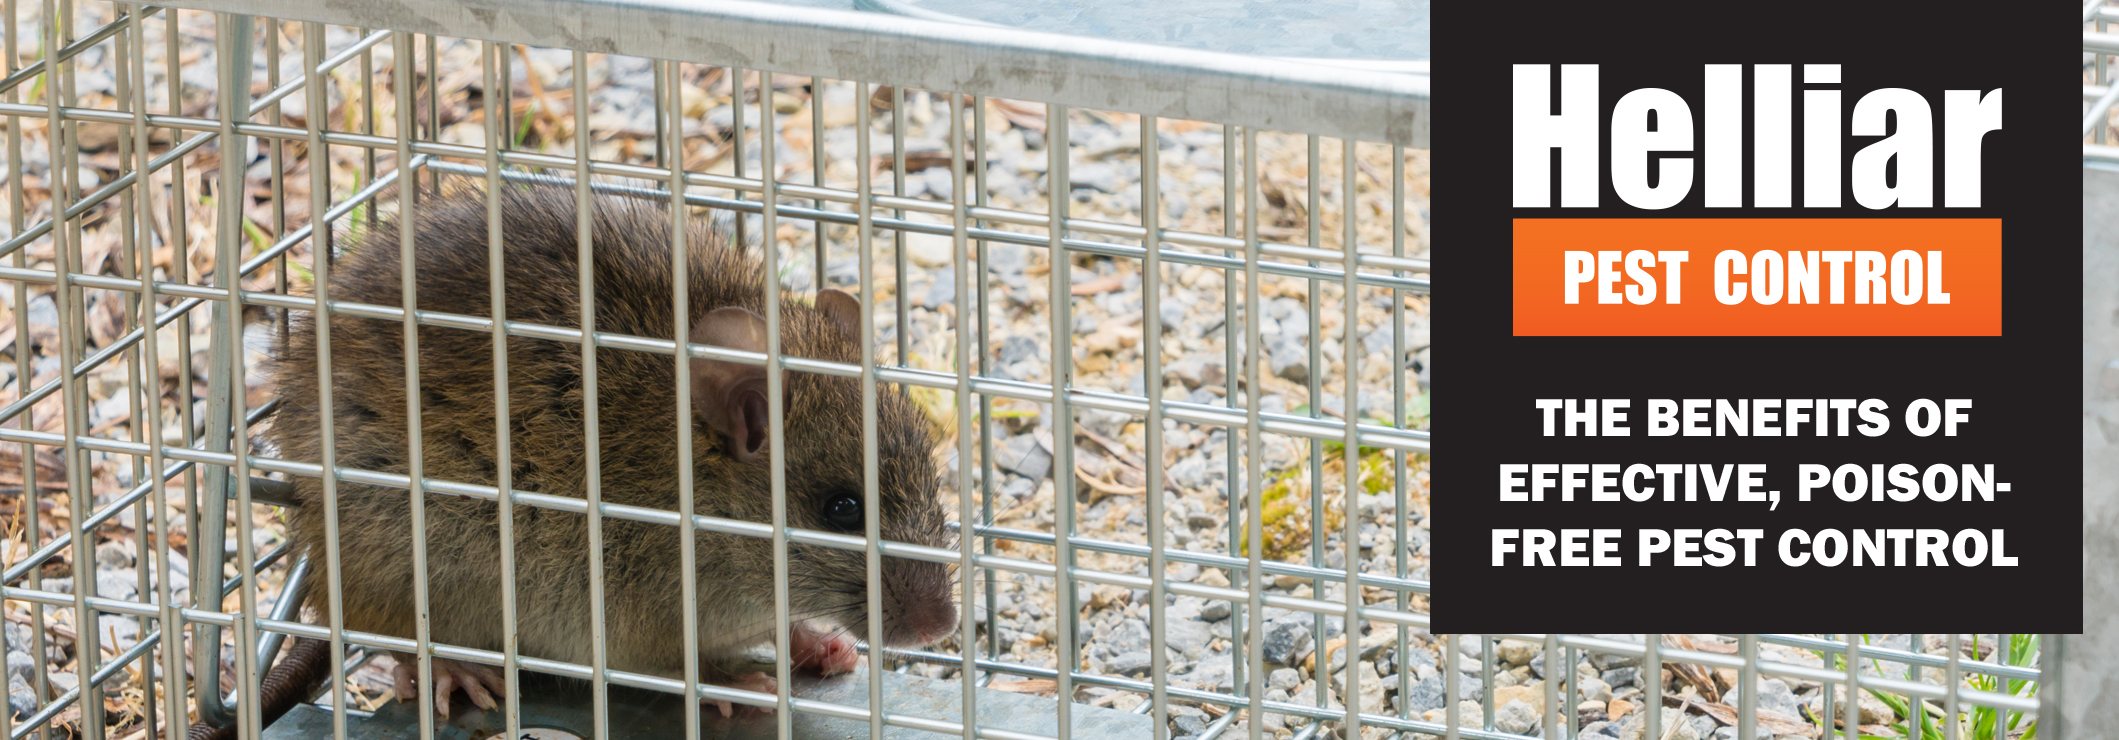 Get rid of rodents without poison